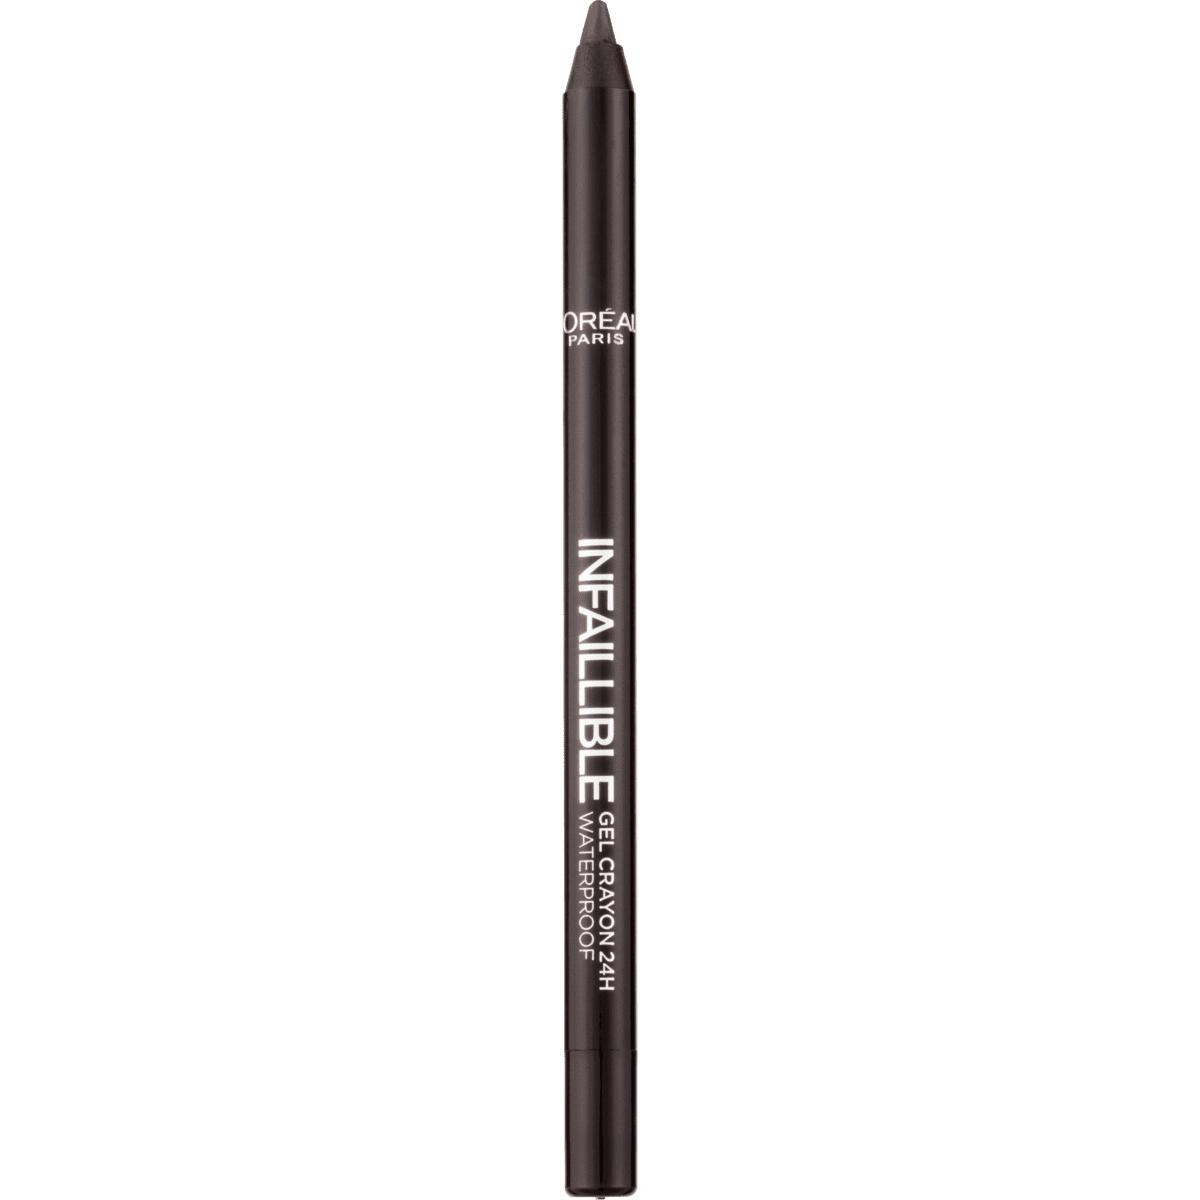 L'Oréal Paris Infaillible Gel Crayon 24H Waterproof 03 Browny Crush